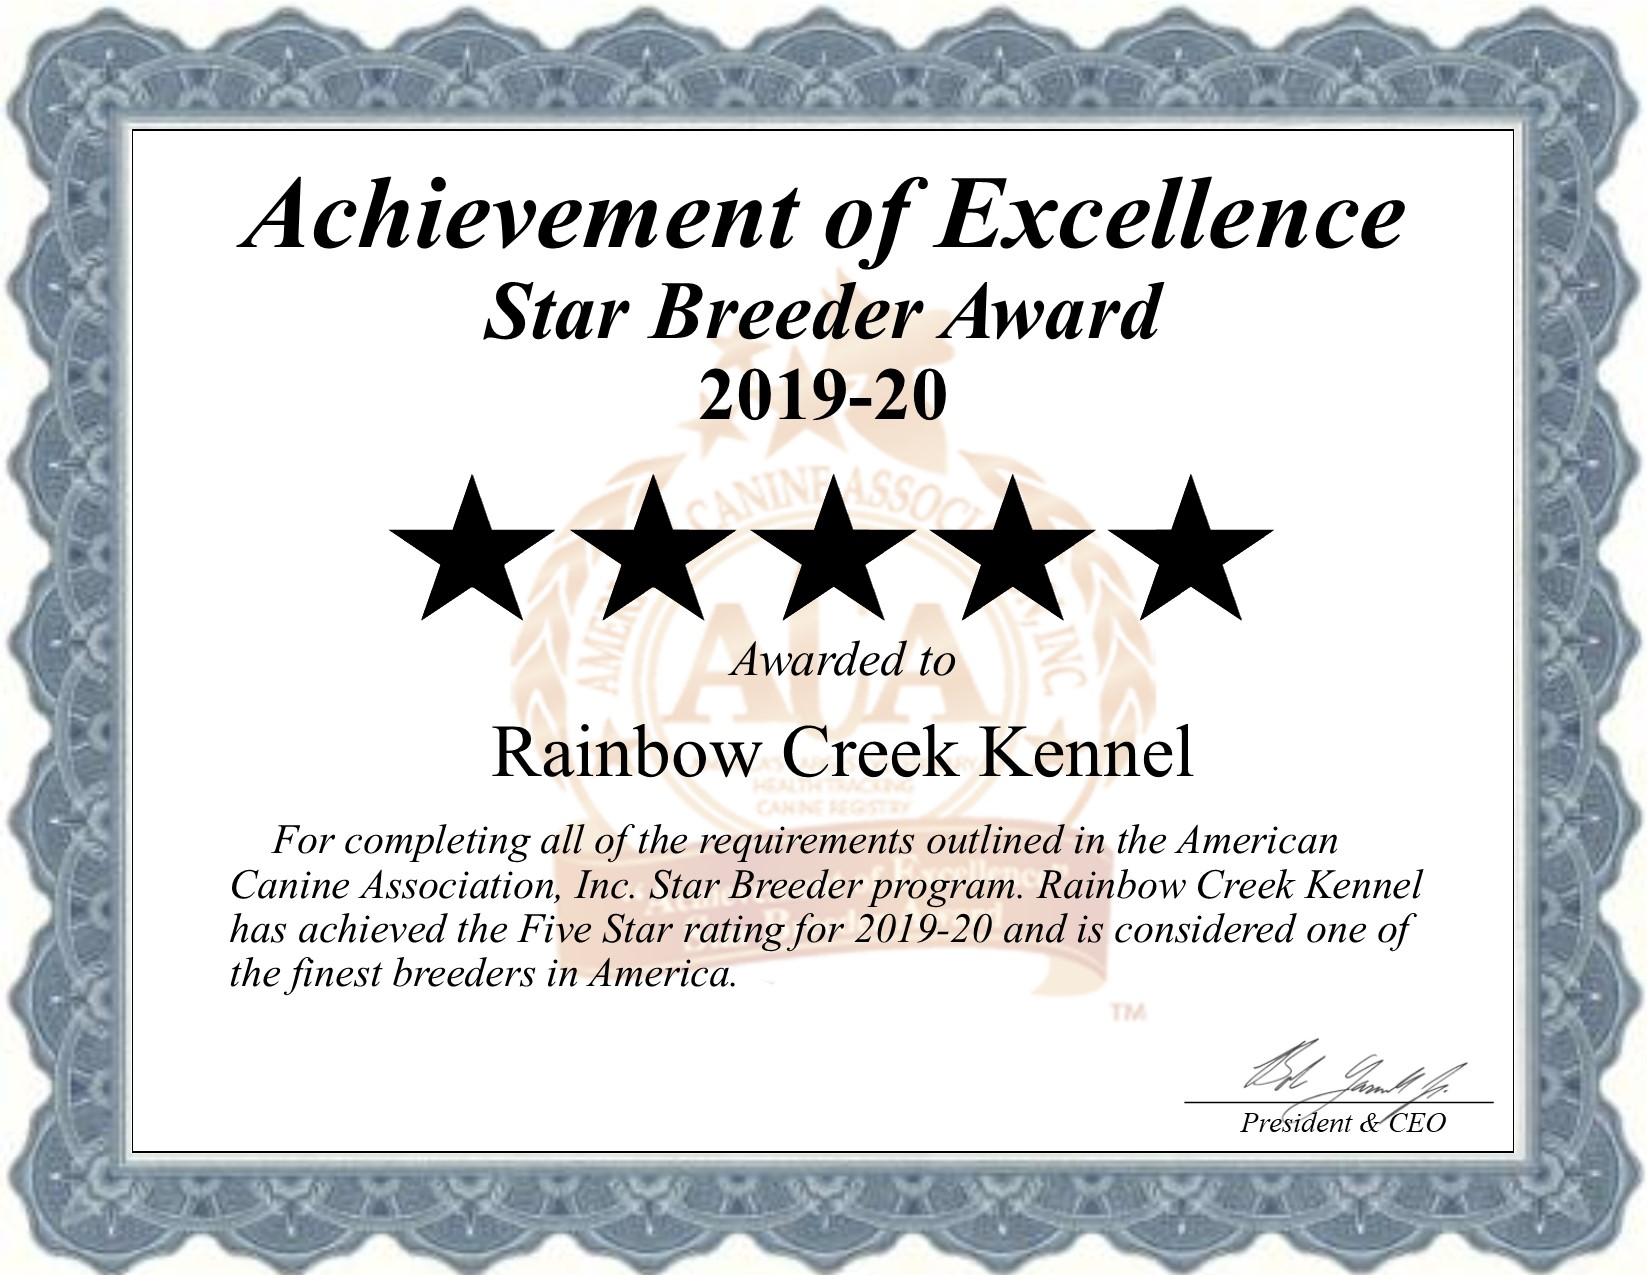 Rainbow, Creek, Kennel, certificate, rainbow_creek_kennel, rainbowcreeksouth, butler, ny, new york, breeder, dog, star star-breeder, starbreeder, 5 star, dogs, puppy, puppies, five star, kennels, ACA, American, canine, association, dogshow, shows, handler, new-york, puppymill, mill, commercial, professional, USDA